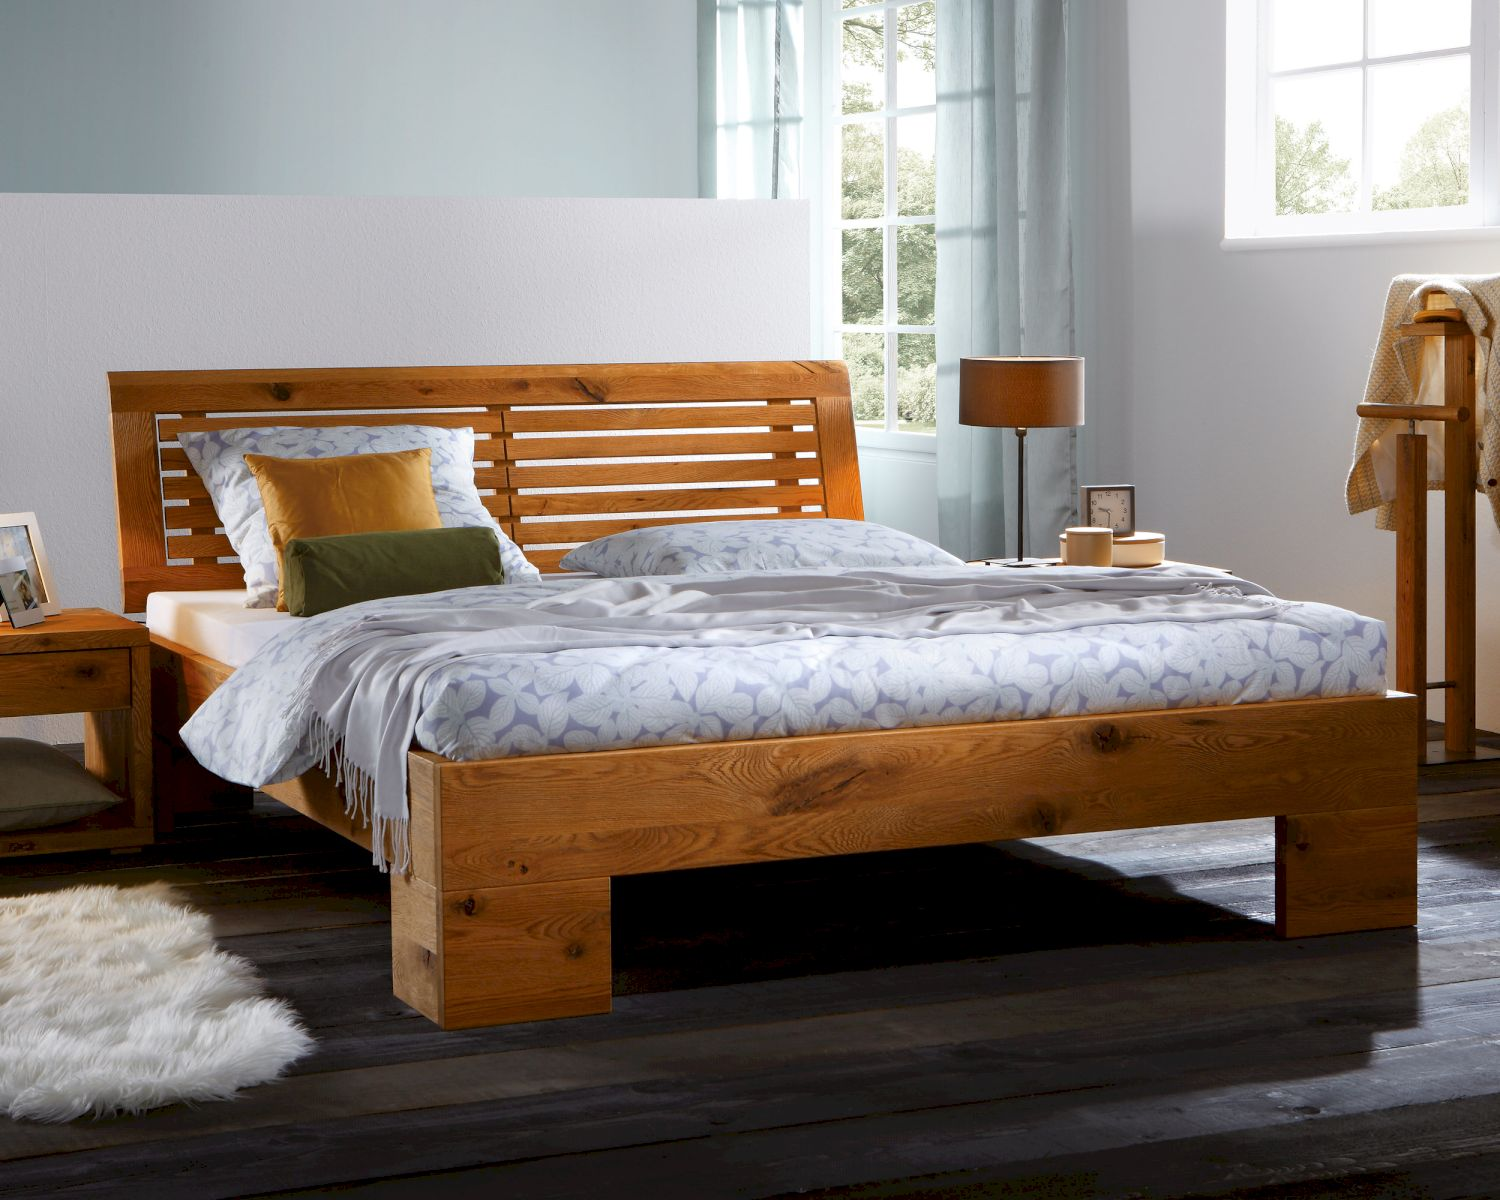 hasena oak line wild bett cadro covabarro. Black Bedroom Furniture Sets. Home Design Ideas